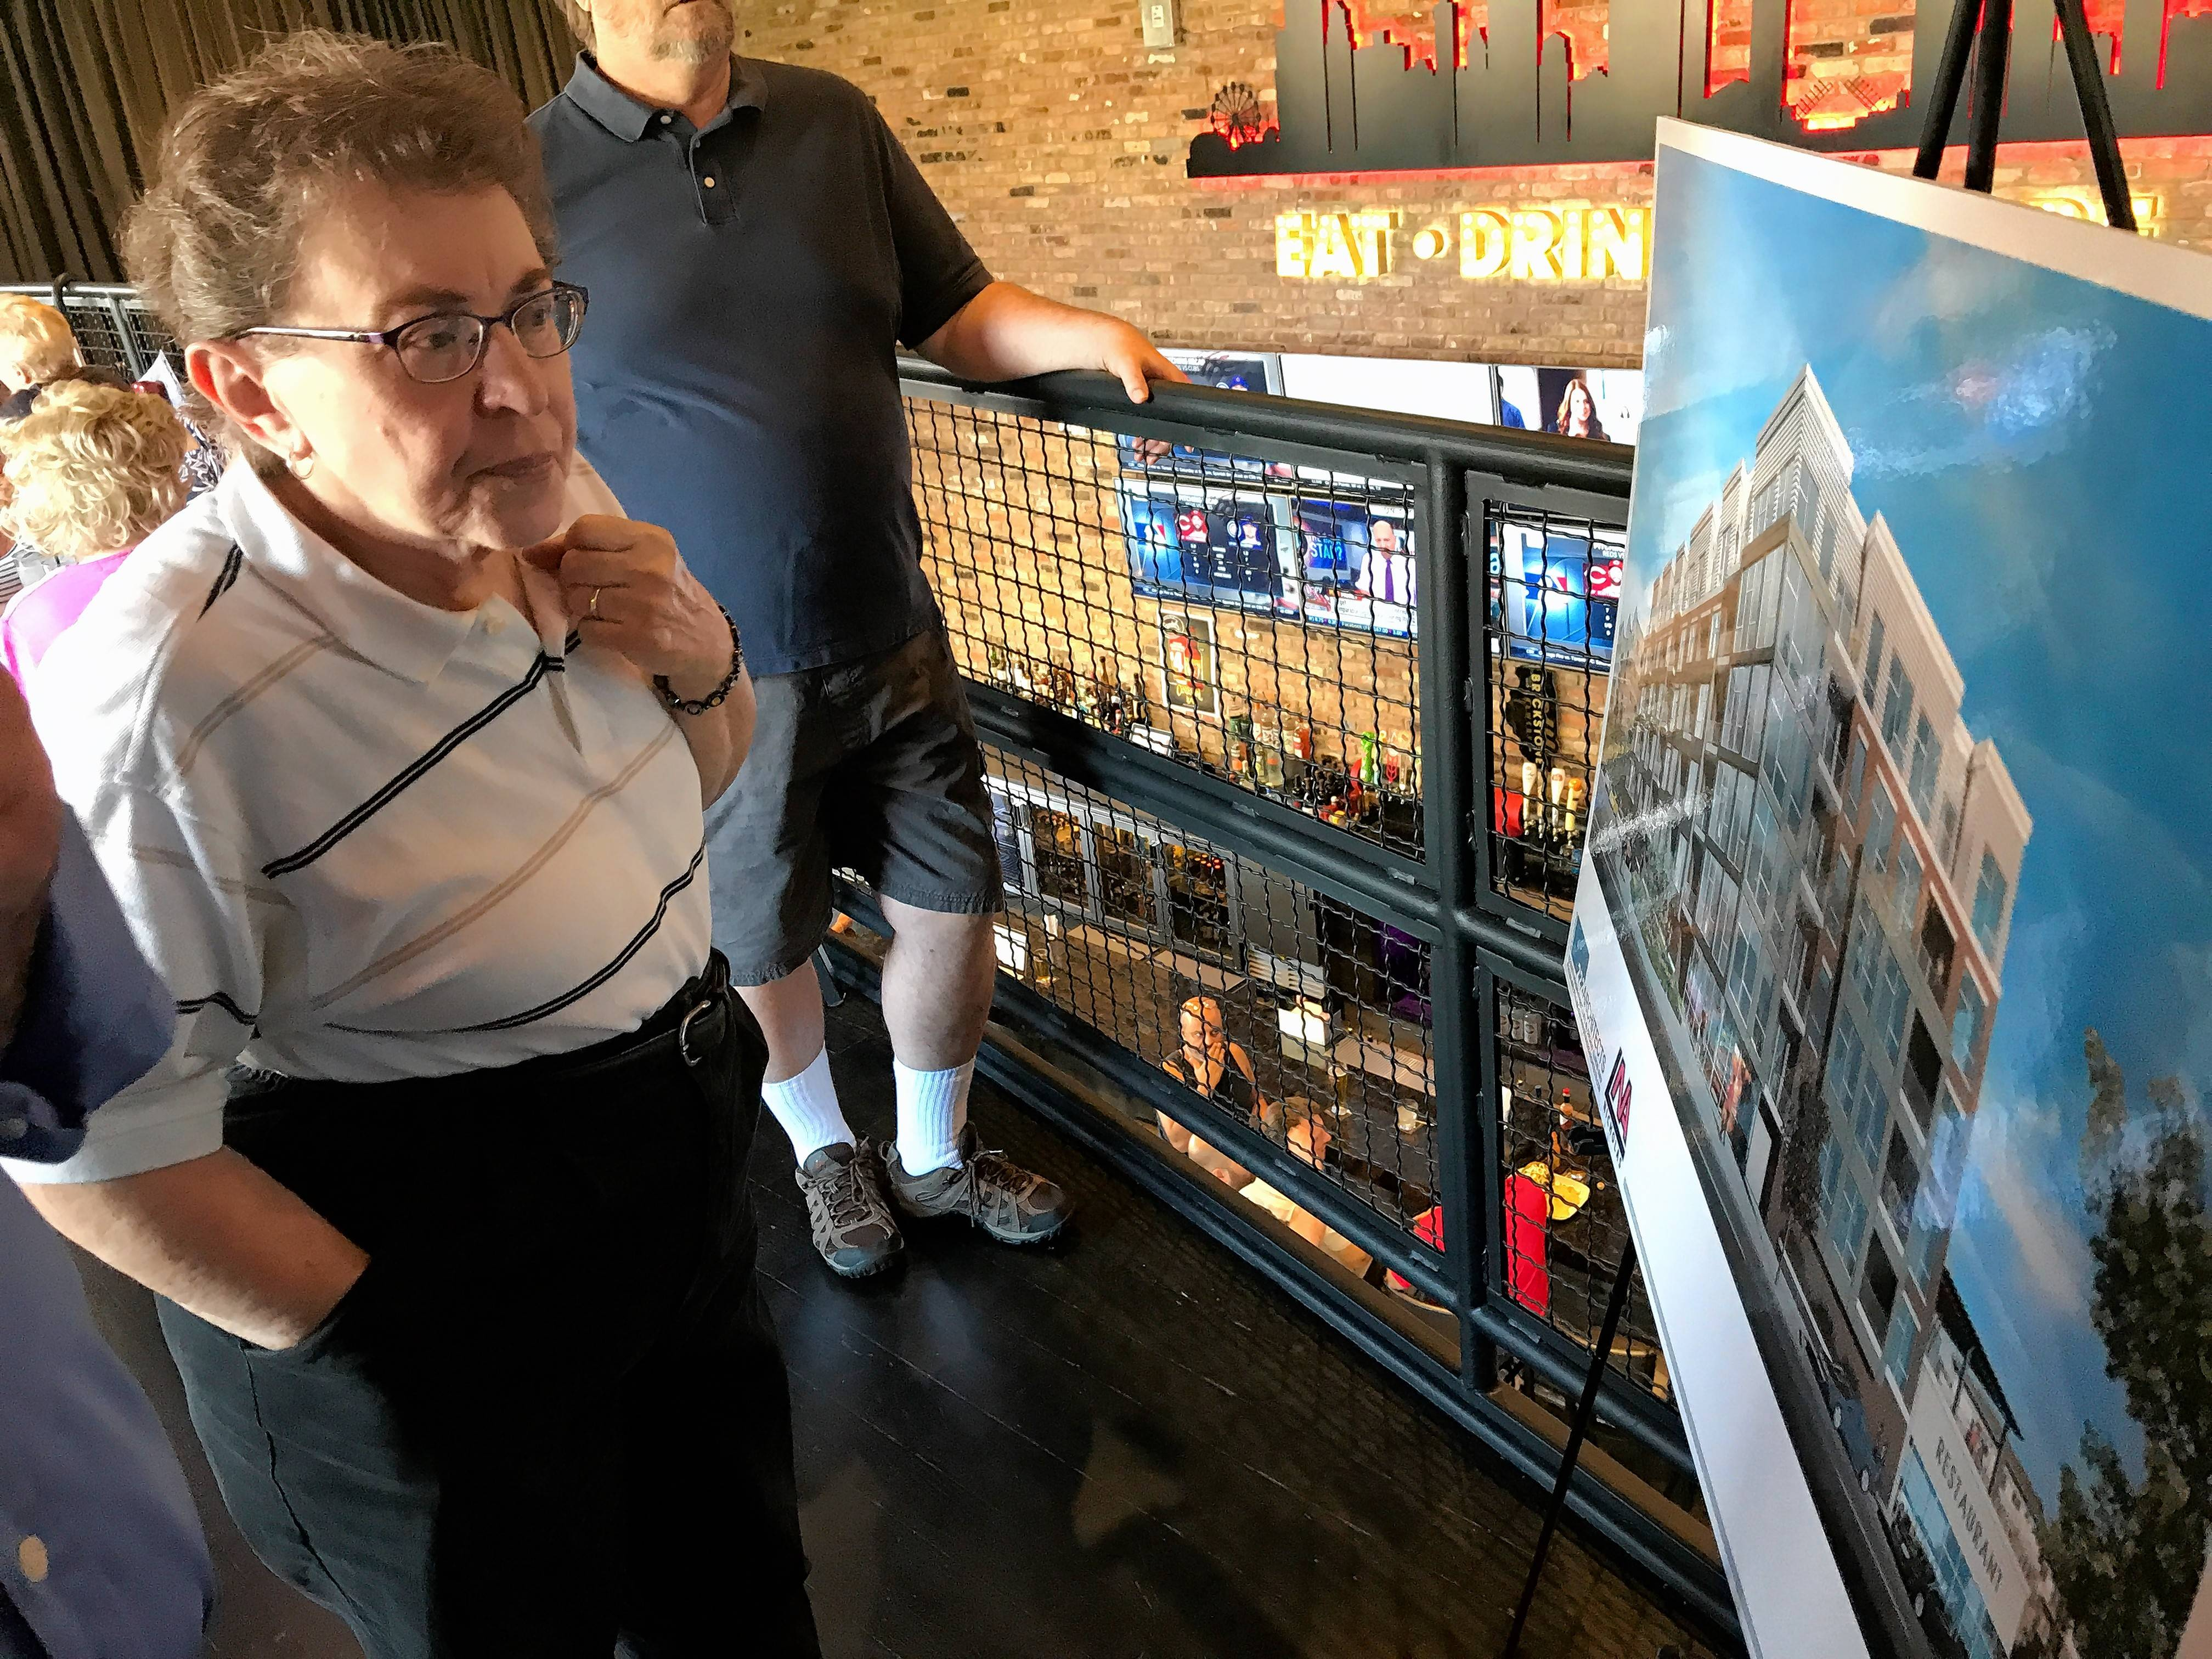 Mount Prospect resident Barb Ostrominski examines the plans for the apartment development in the village's downtown. Ostrominski and other residents say they're glad to see development on the site, but worry about traffic and parking impacts.